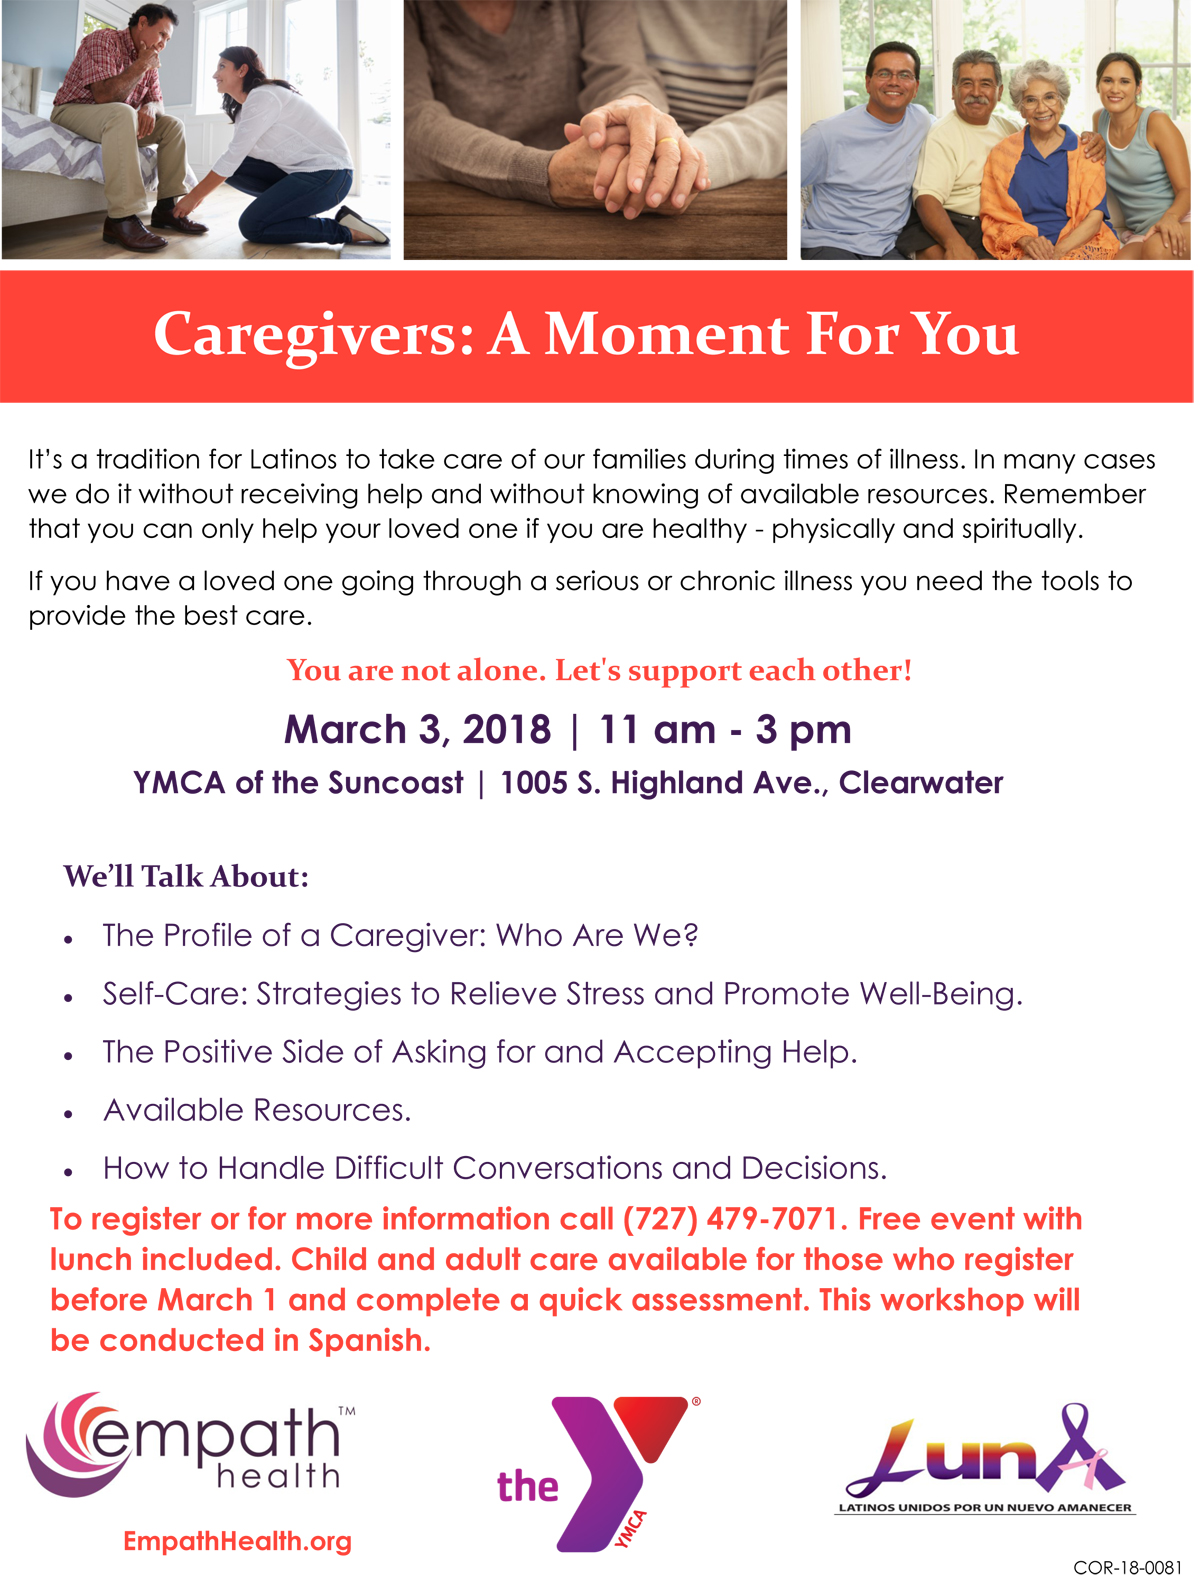 Caregivers: A Moment For You (This workshop is conducted in Spanish) @ YMCA of the Suncoast